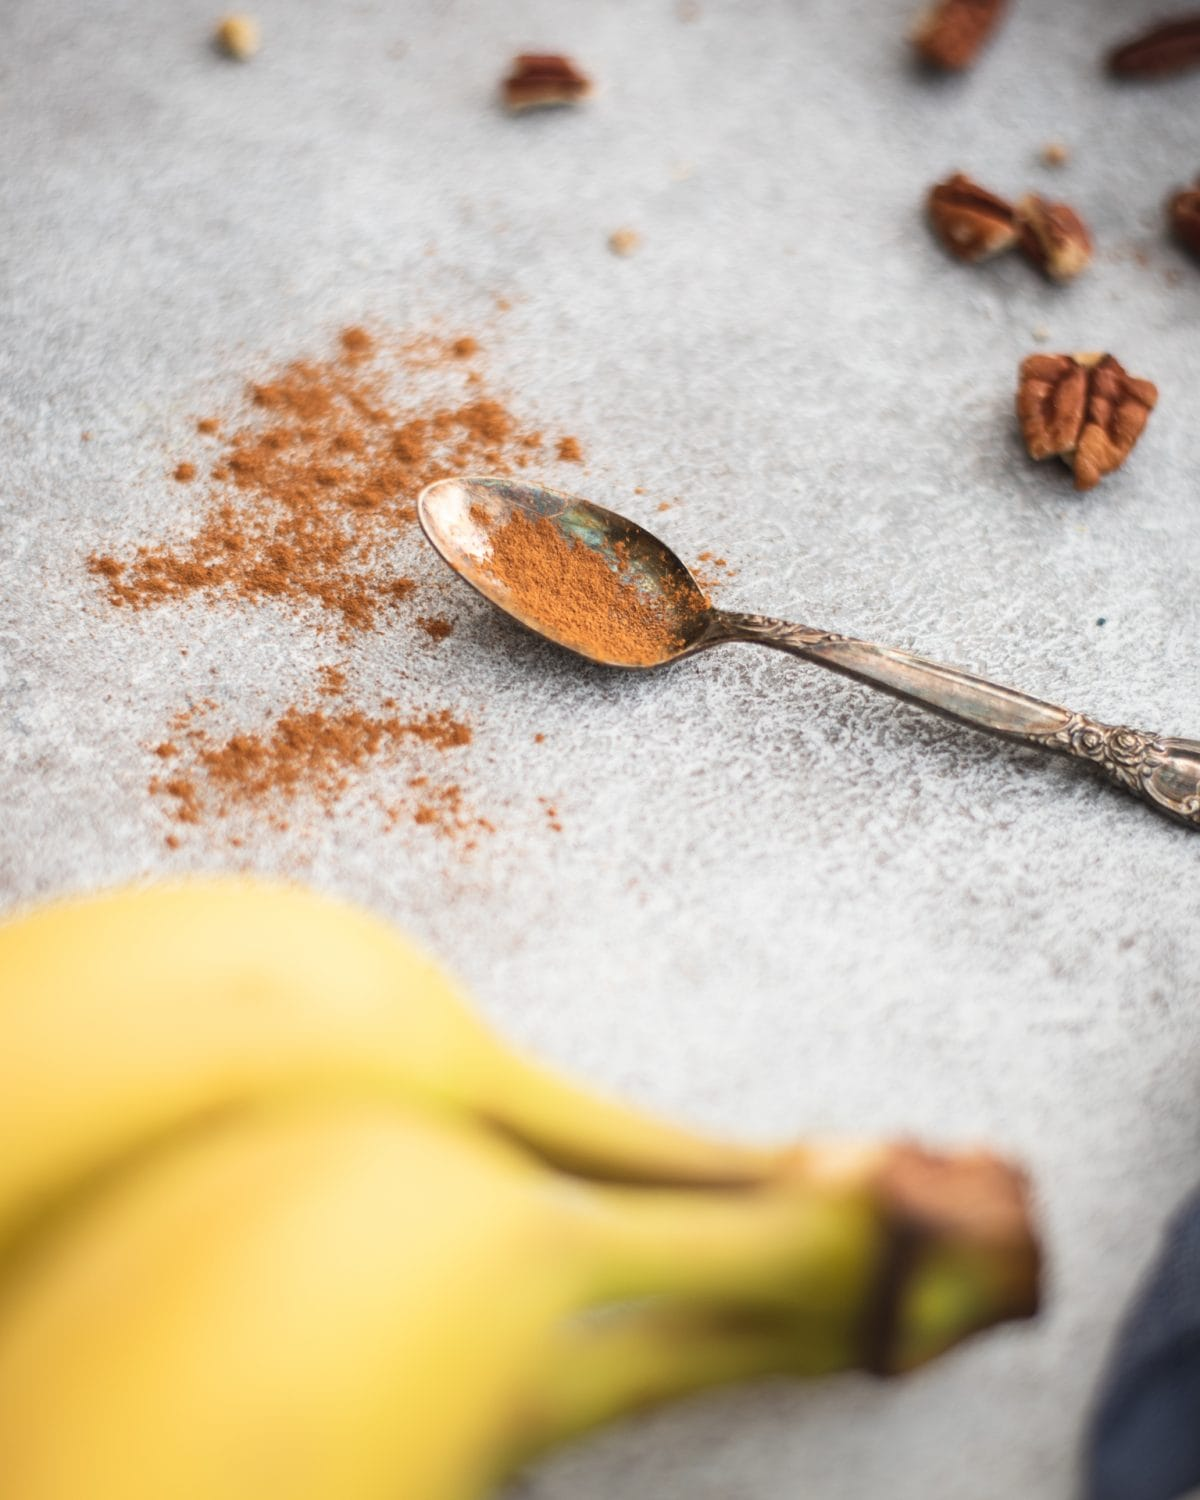 Spoon of cinnamon with bananas and pecans